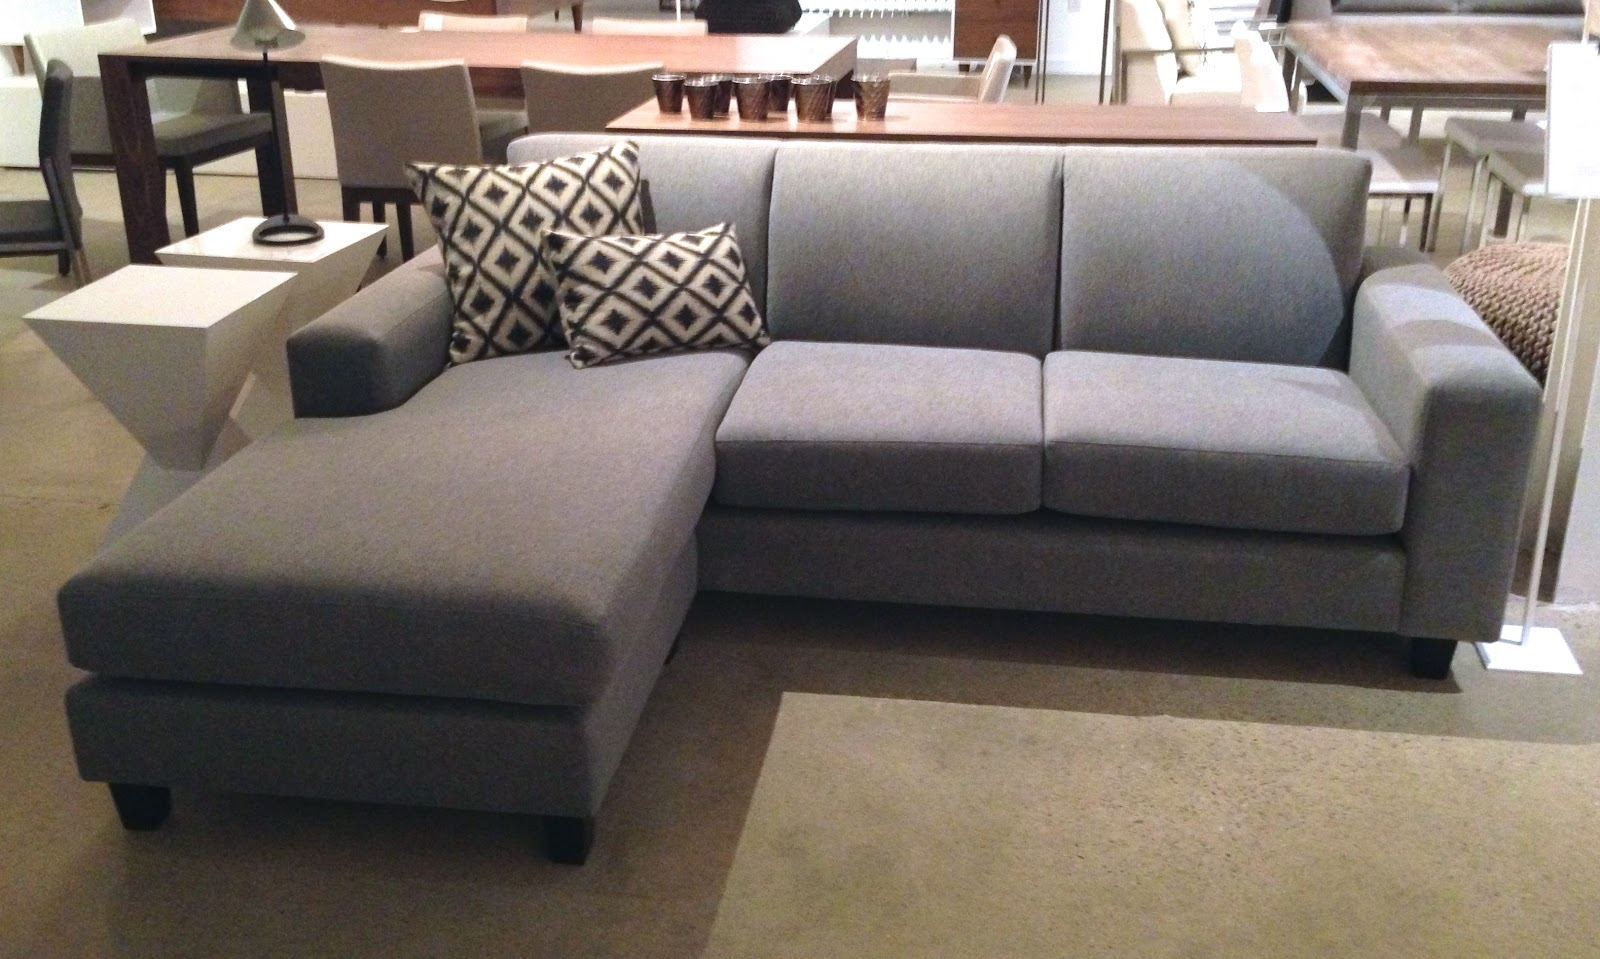 Most Popular Sectional Sofas For Condos Intended For Sectionals Canada (View 7 of 15)